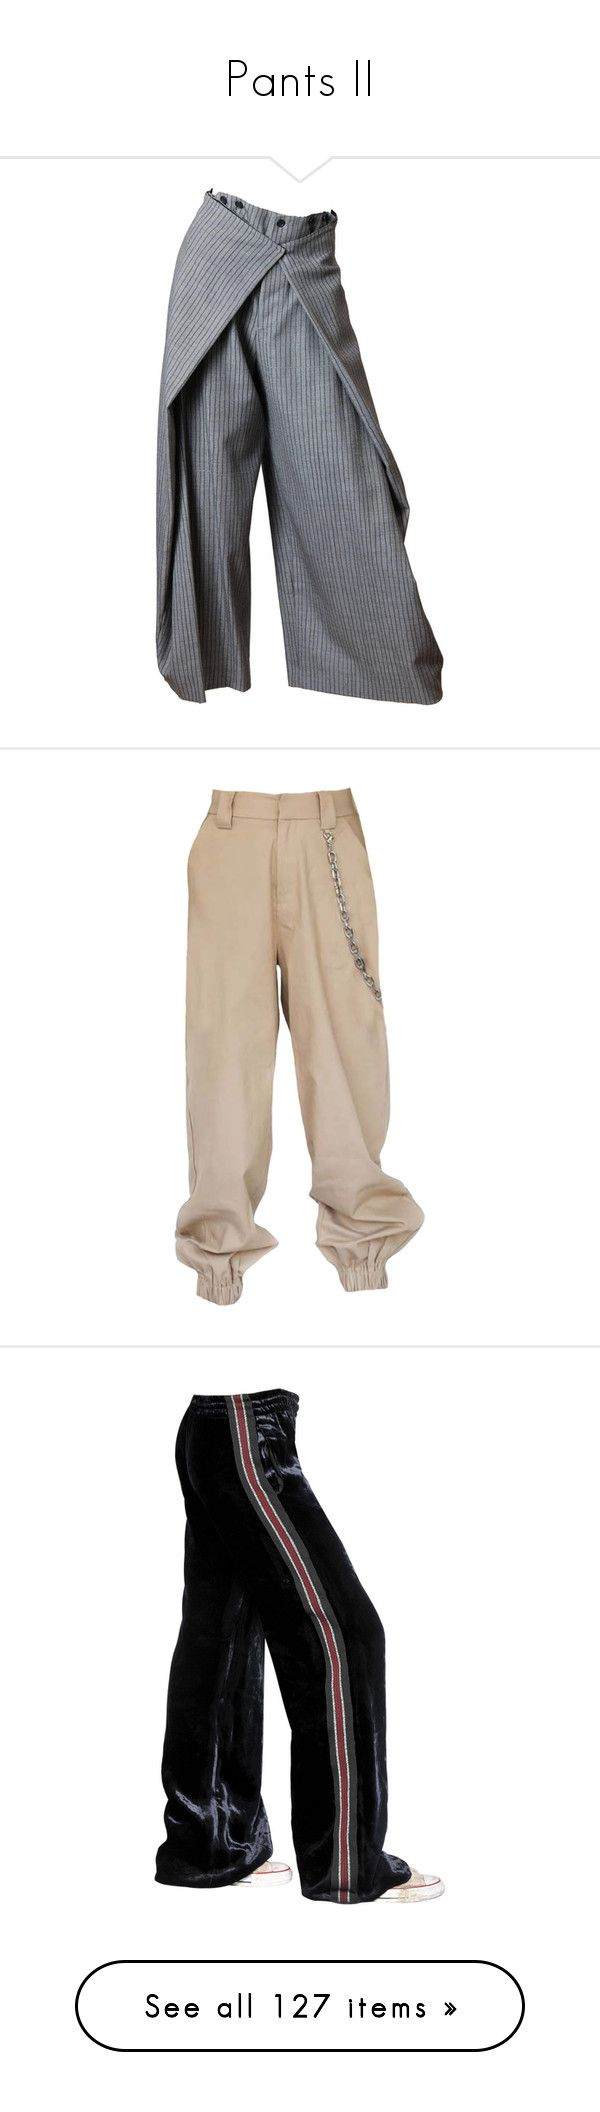 """""""Pants II"""" by stylebyvic ❤ liked on Polyvore featuring pants, bottoms, legs, multiple, fold over pants, jean paul gaultier pants, jean-paul gaultier, victorian pants, fold pants and navy"""